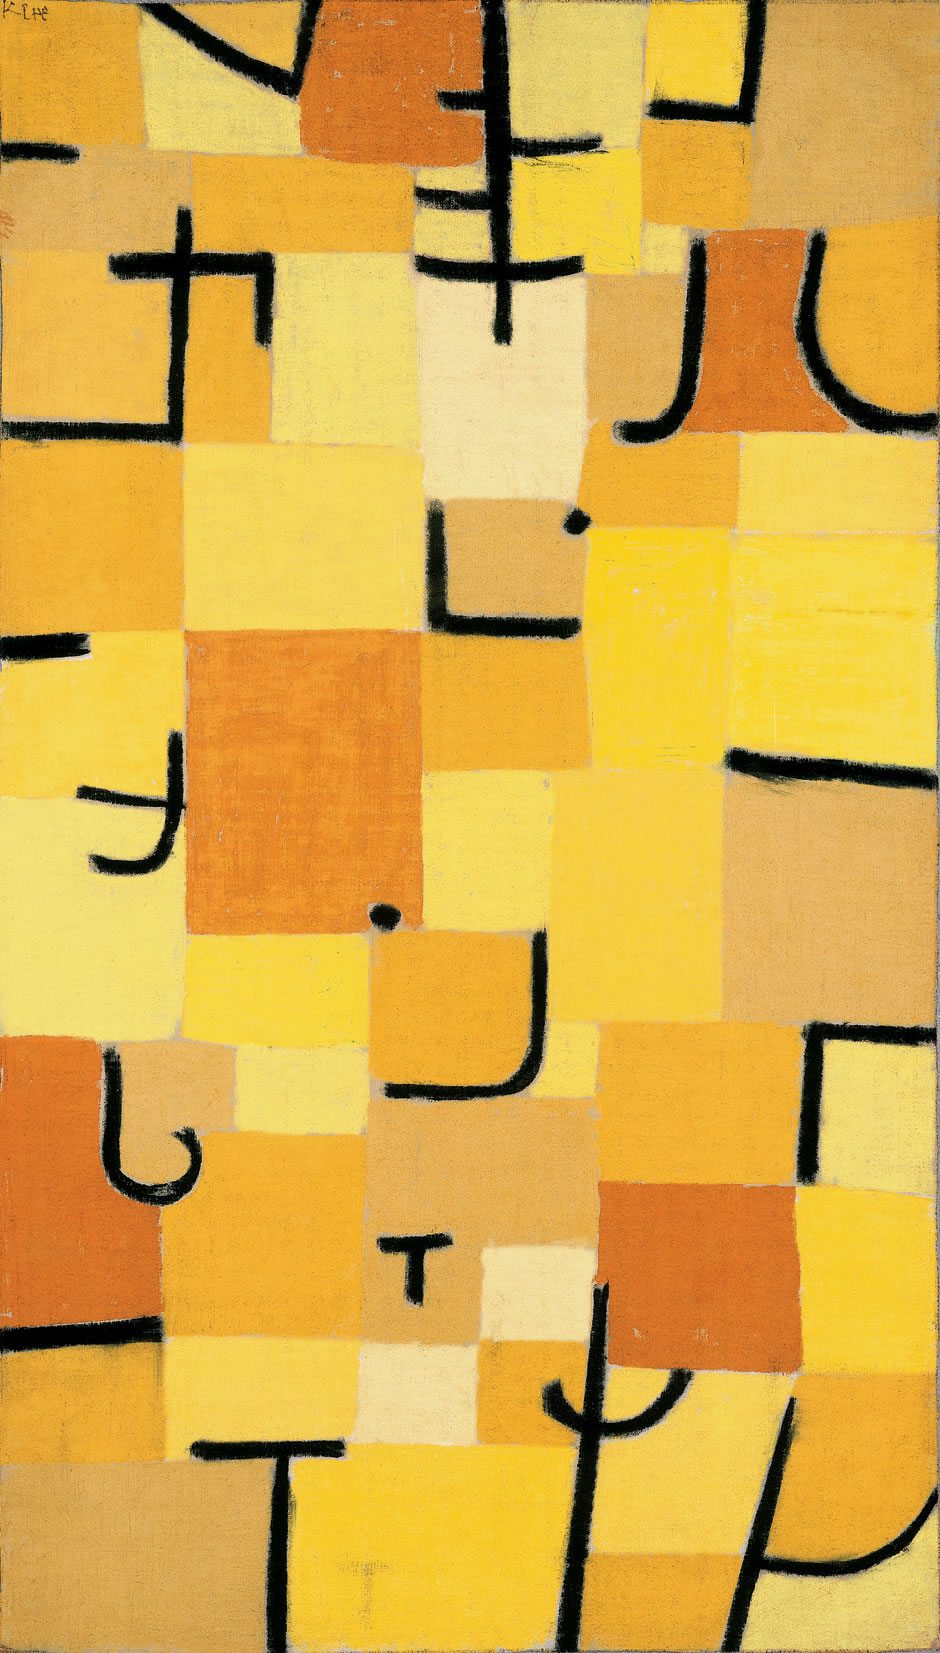 Signes en Jaune by Paul Klee, 1937